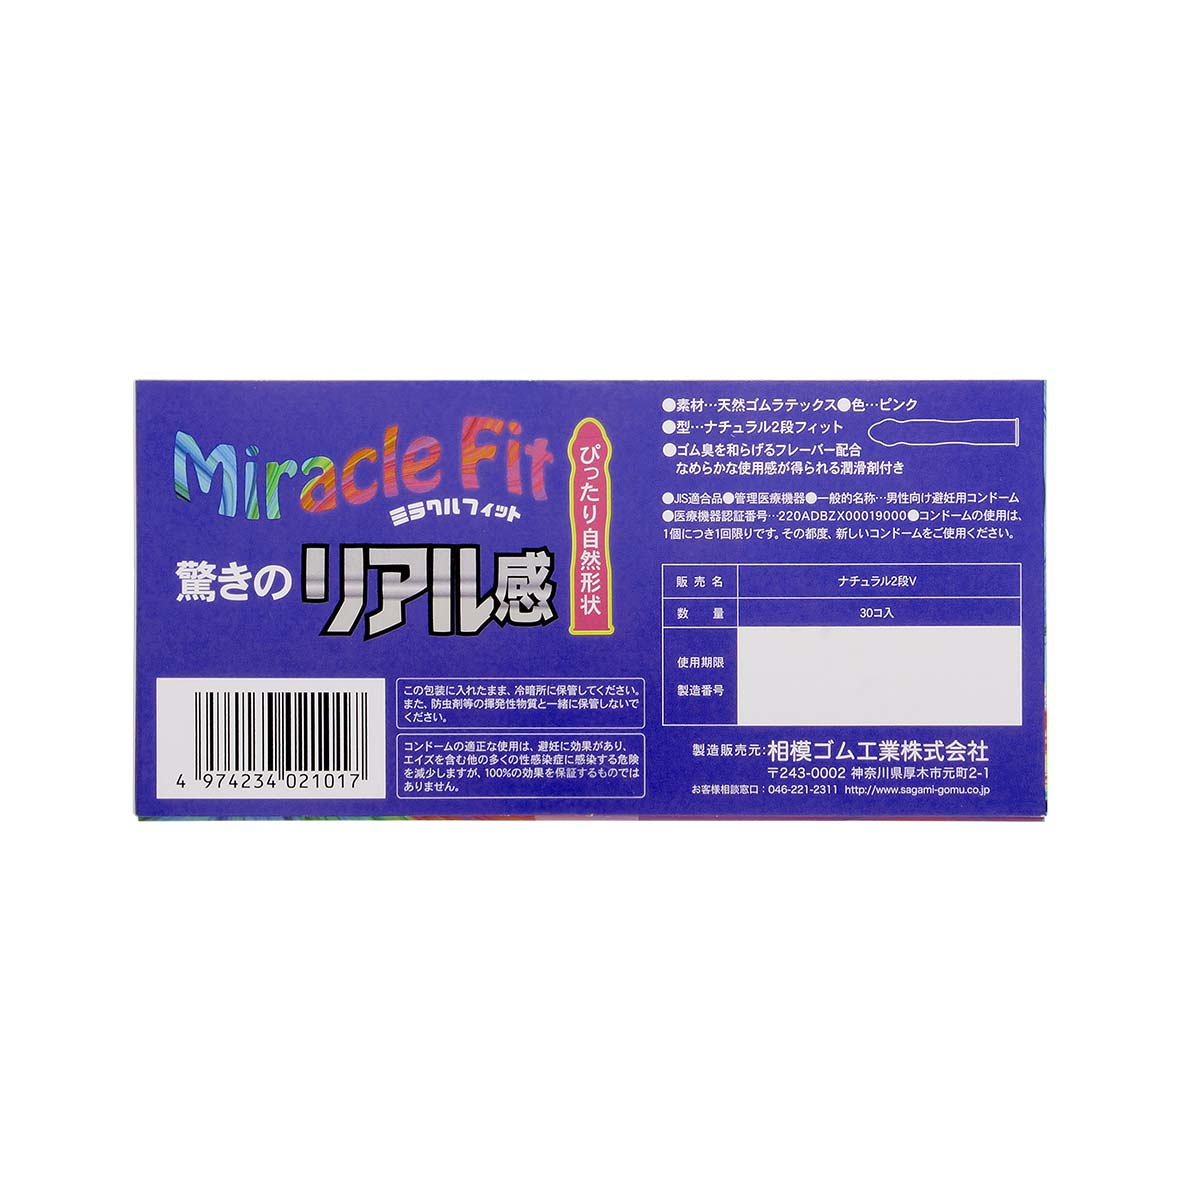 Sagami Miracle Fit 51mm 30's Pack Latex Condom